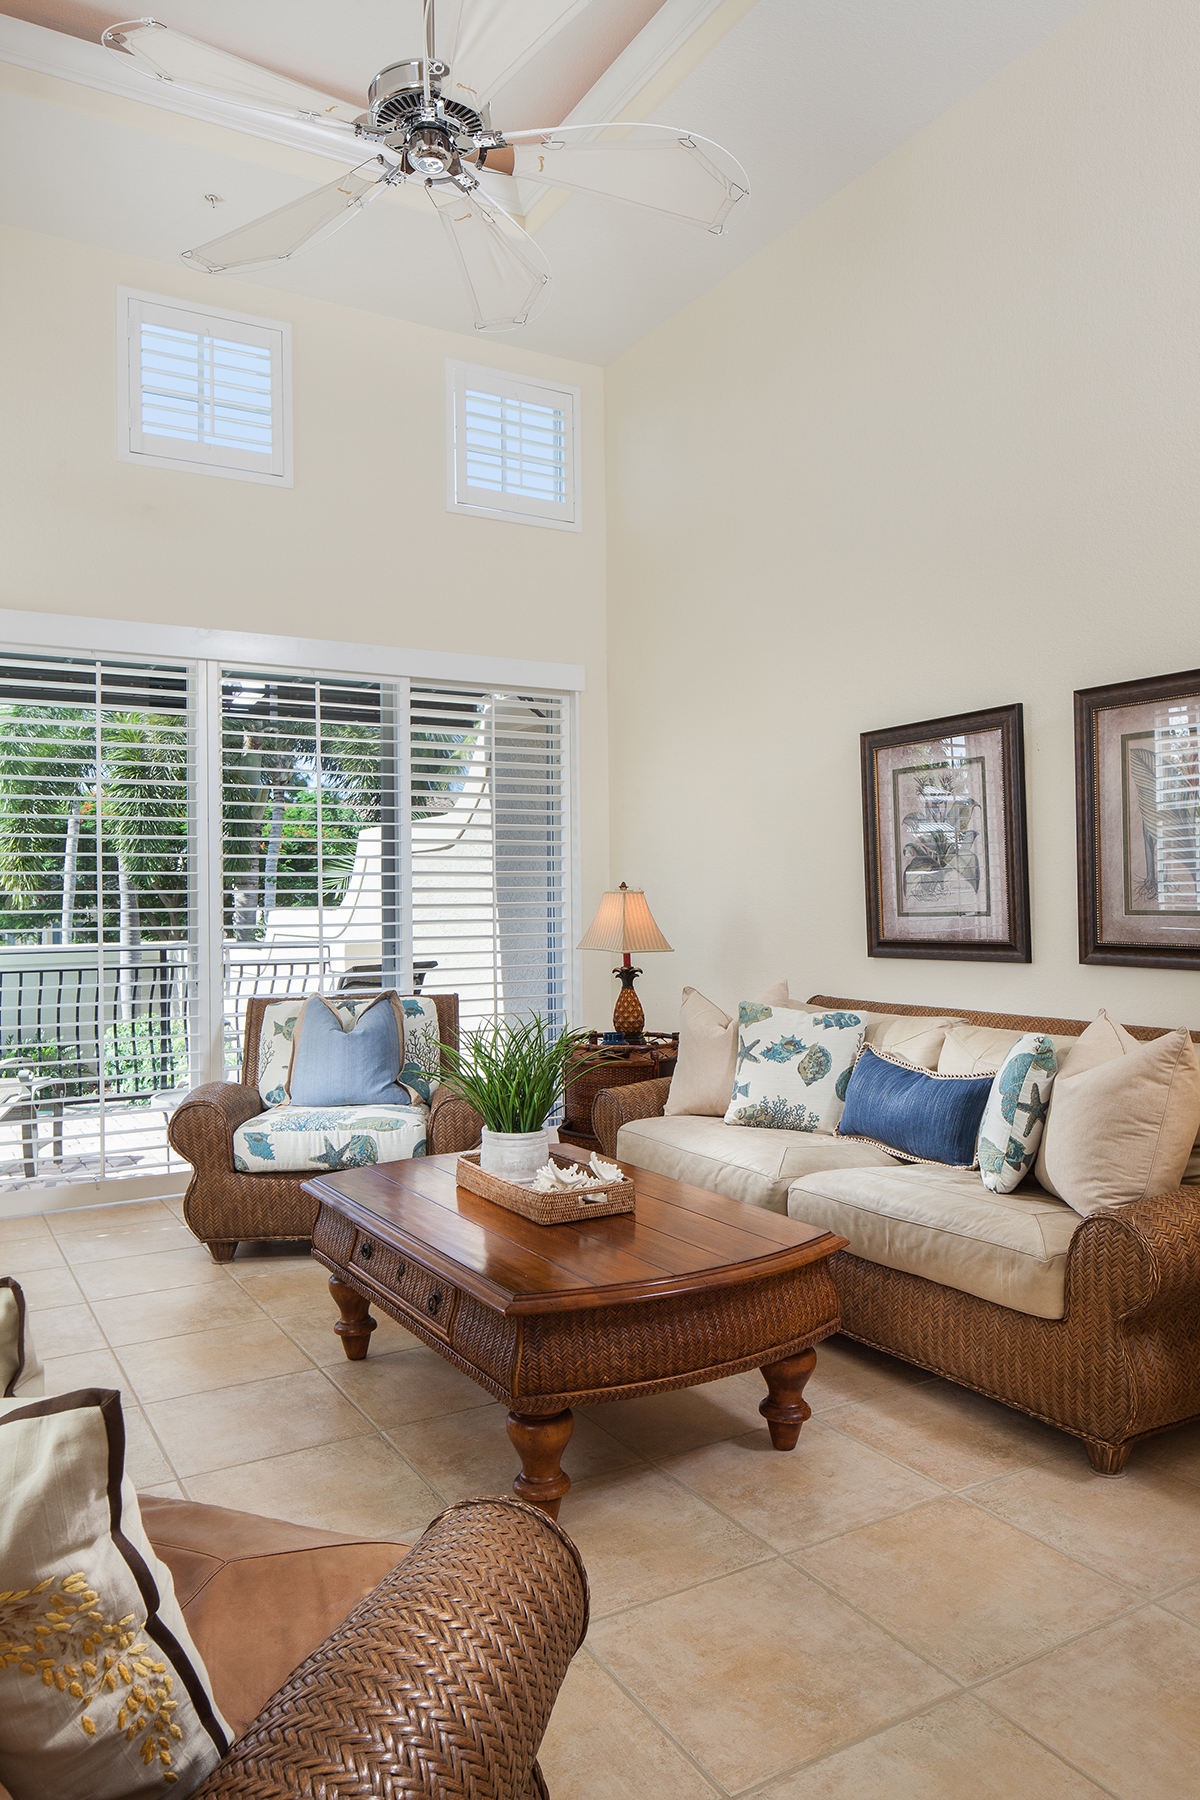 Property For Sale at 393 2nd Ave S, Naples, FL 34102